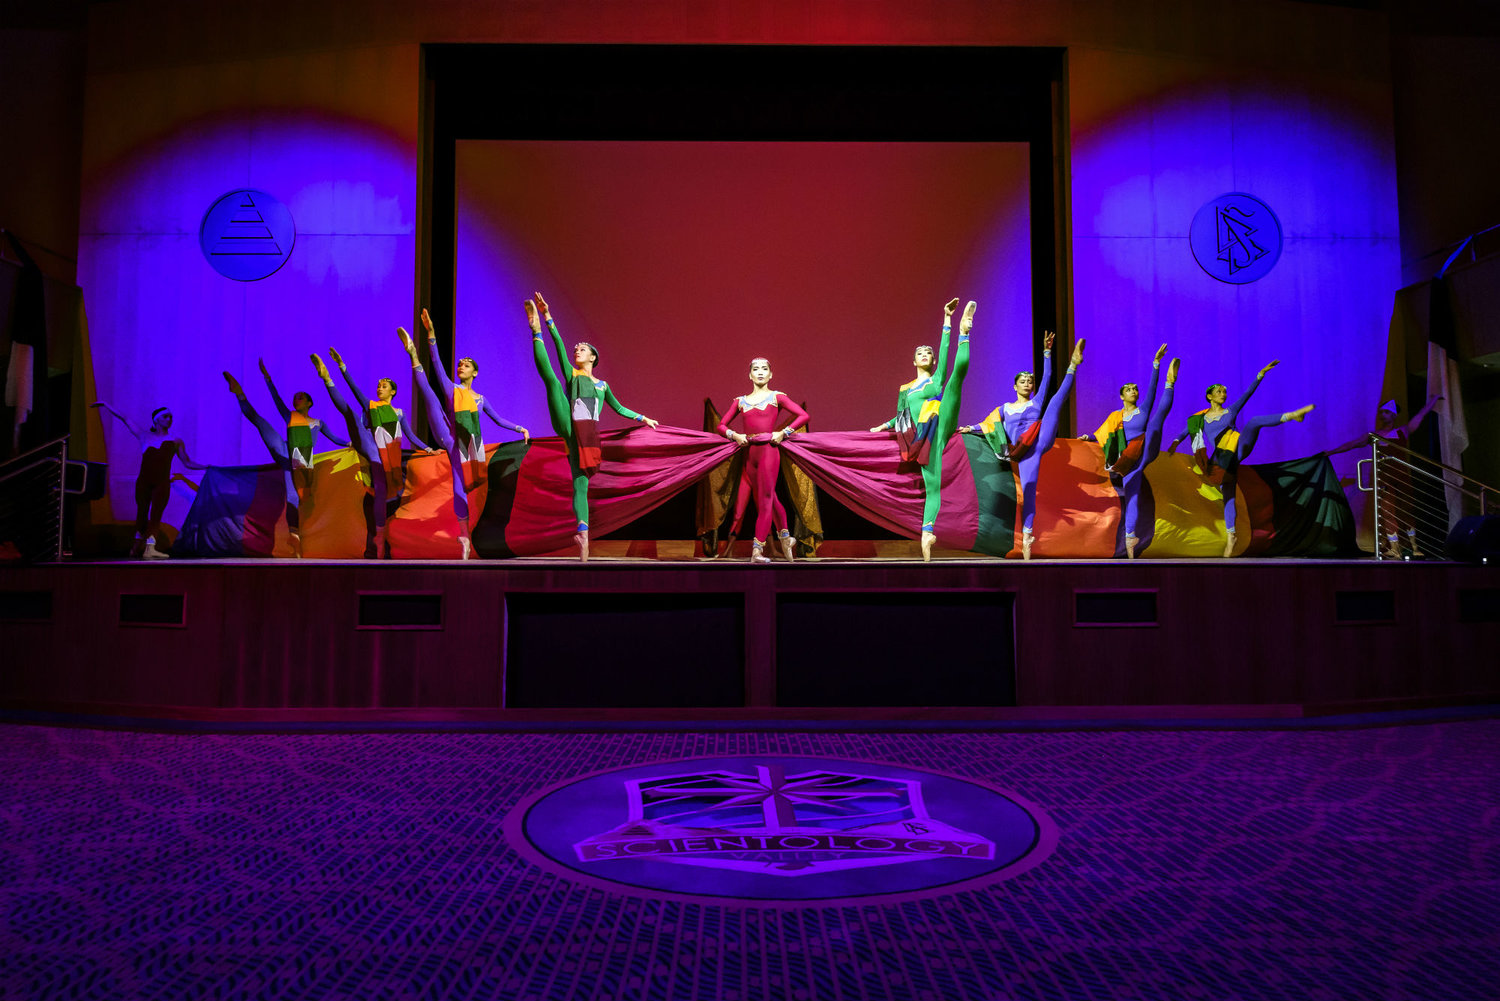 Alvin Purple Tv Series Download a magnificent night of ballet at the church of scientology